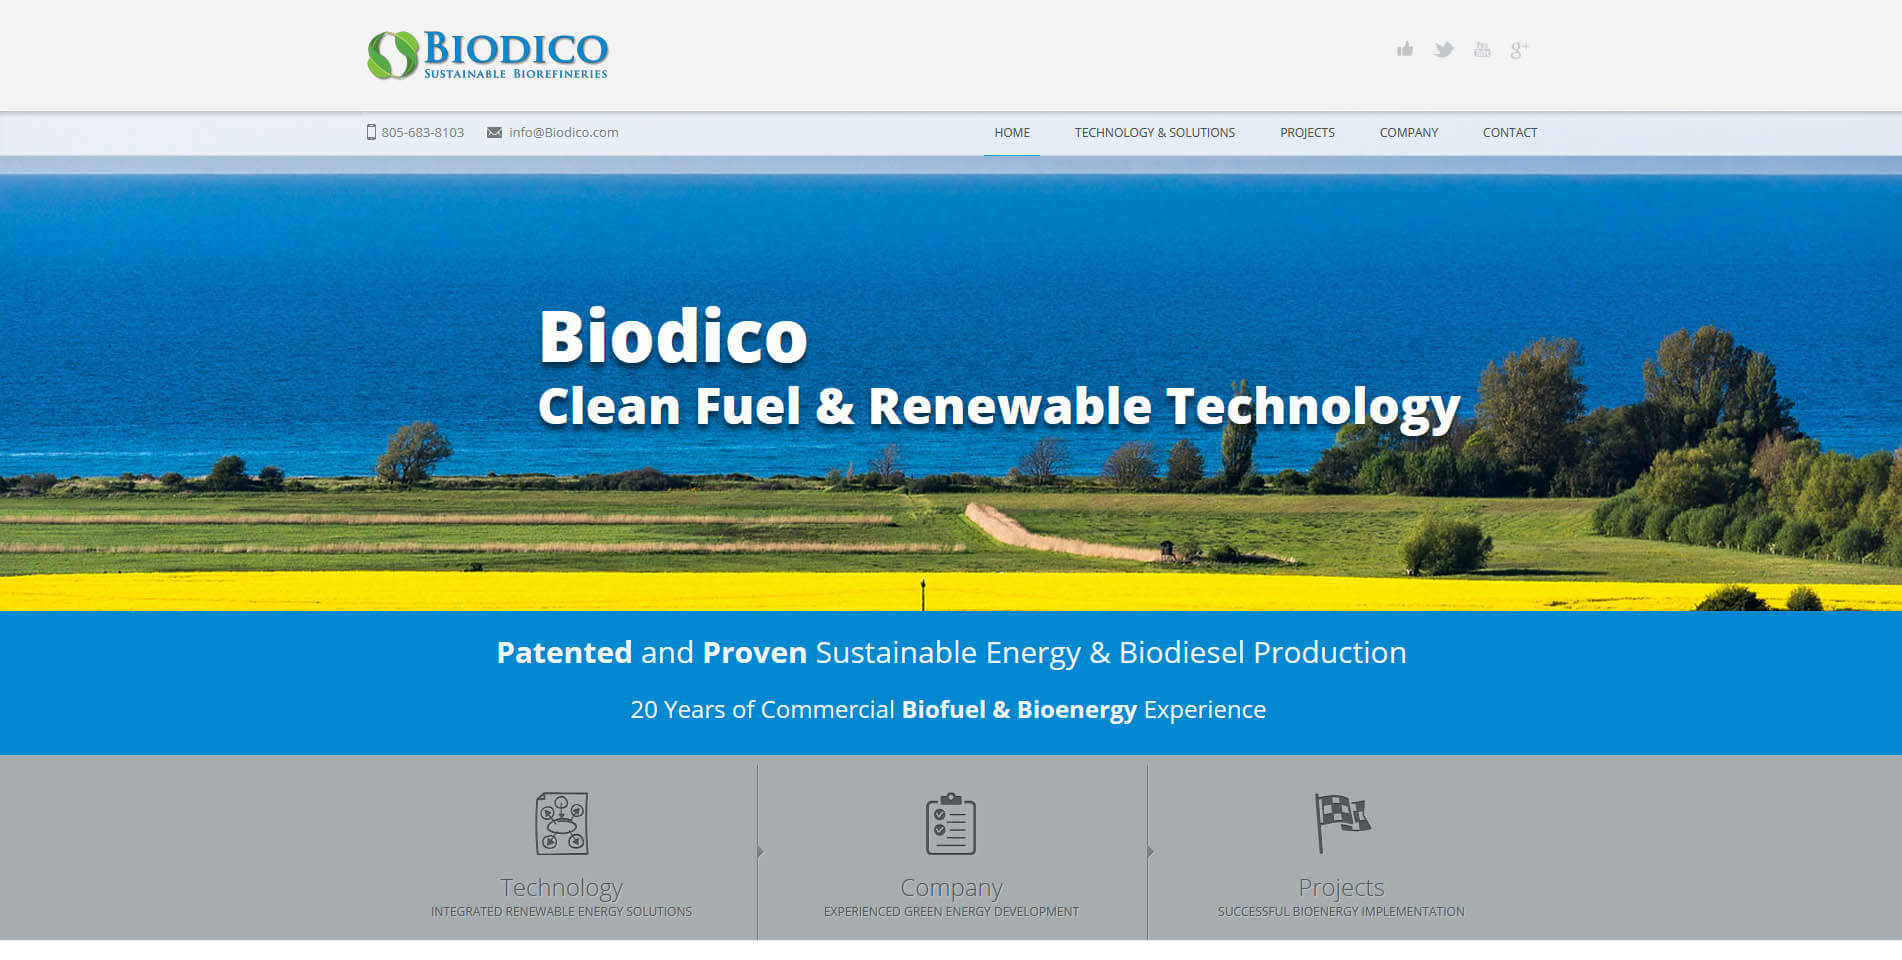 An image of the Biodico web presence built by Not Fade Away.